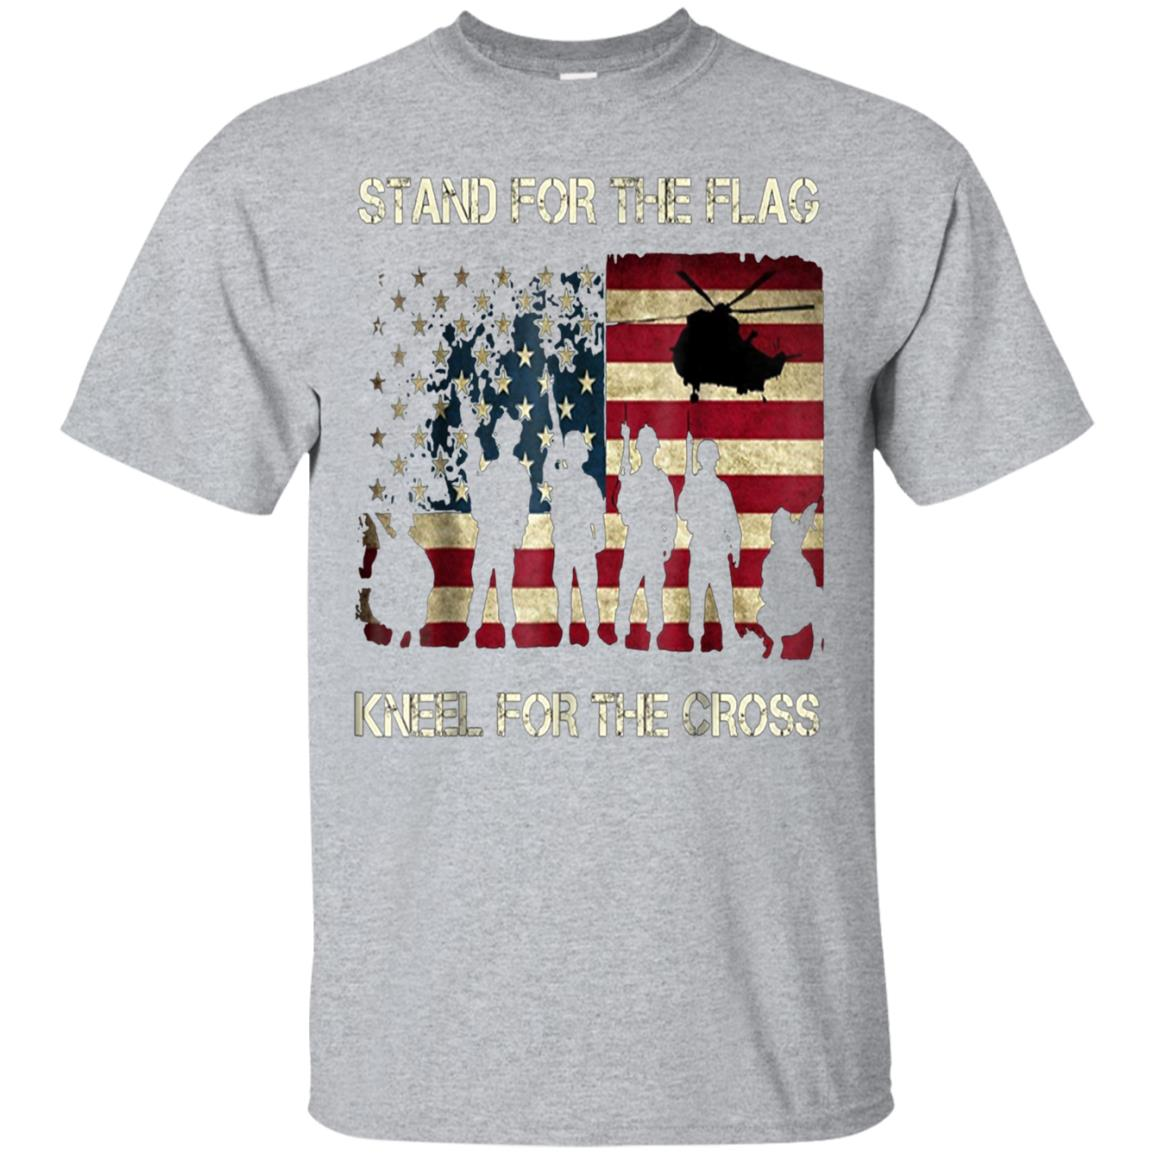 Patriotic American Flag Veterans Day T-Shirt 99promocode